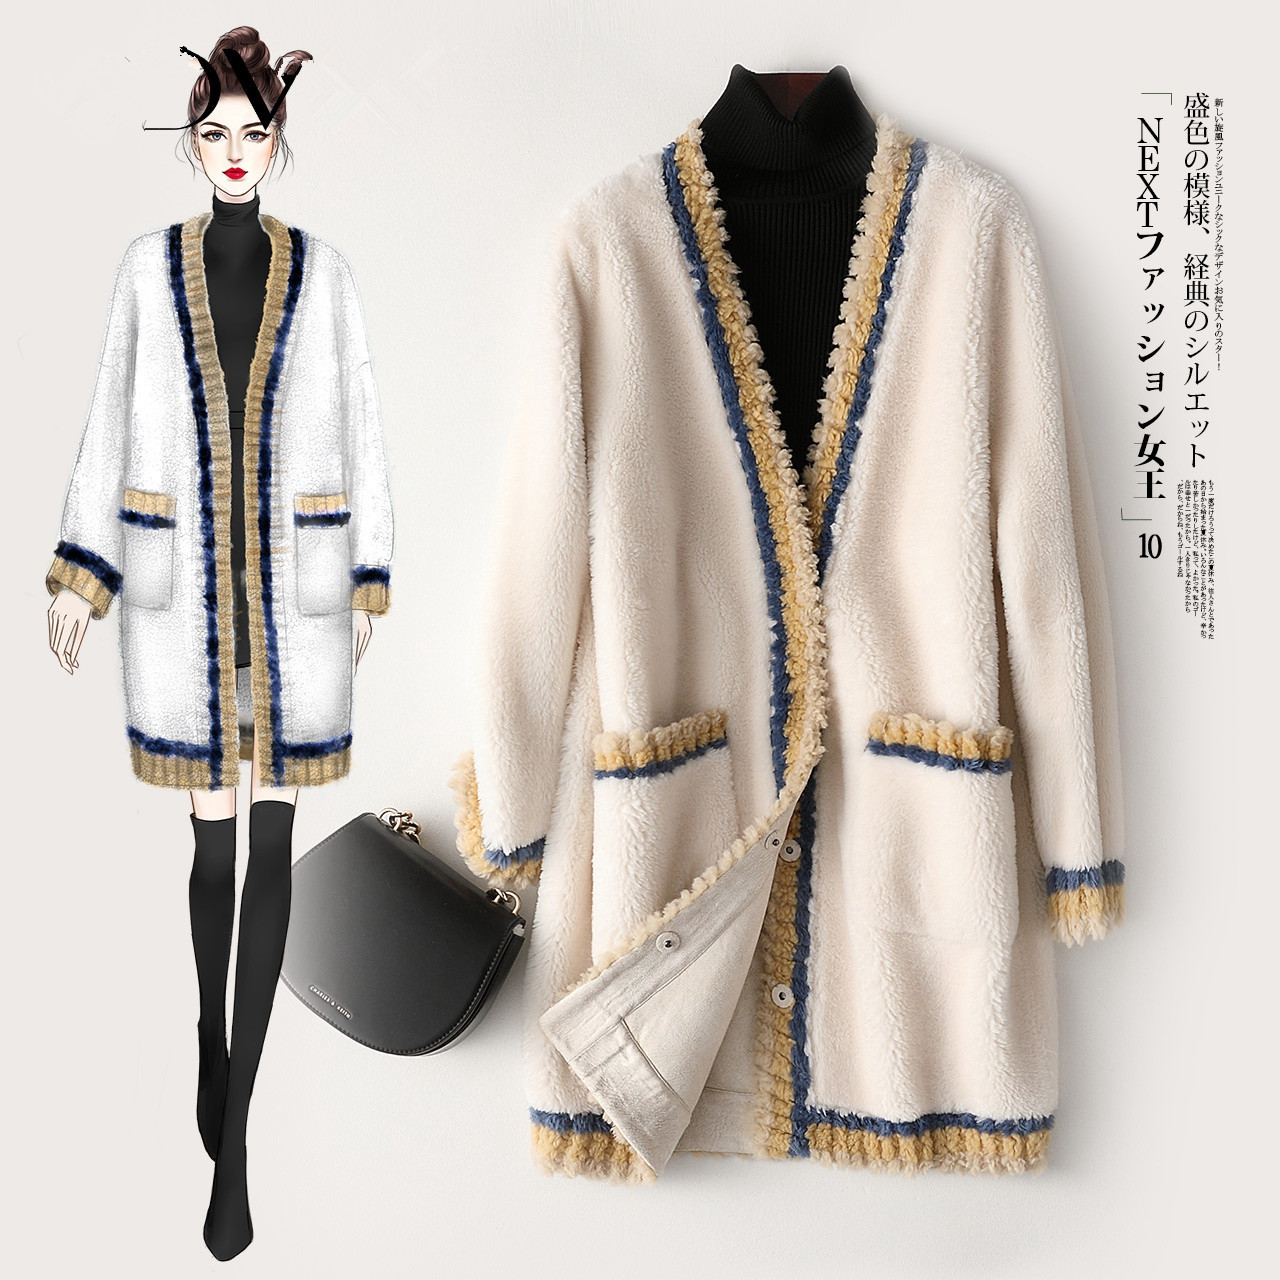 Coat Fur Real Winter Jacket Women Clothes 2020 Sheep Shearling Wool Coat Female Jacket Korean Outwear Manteau Femme MY